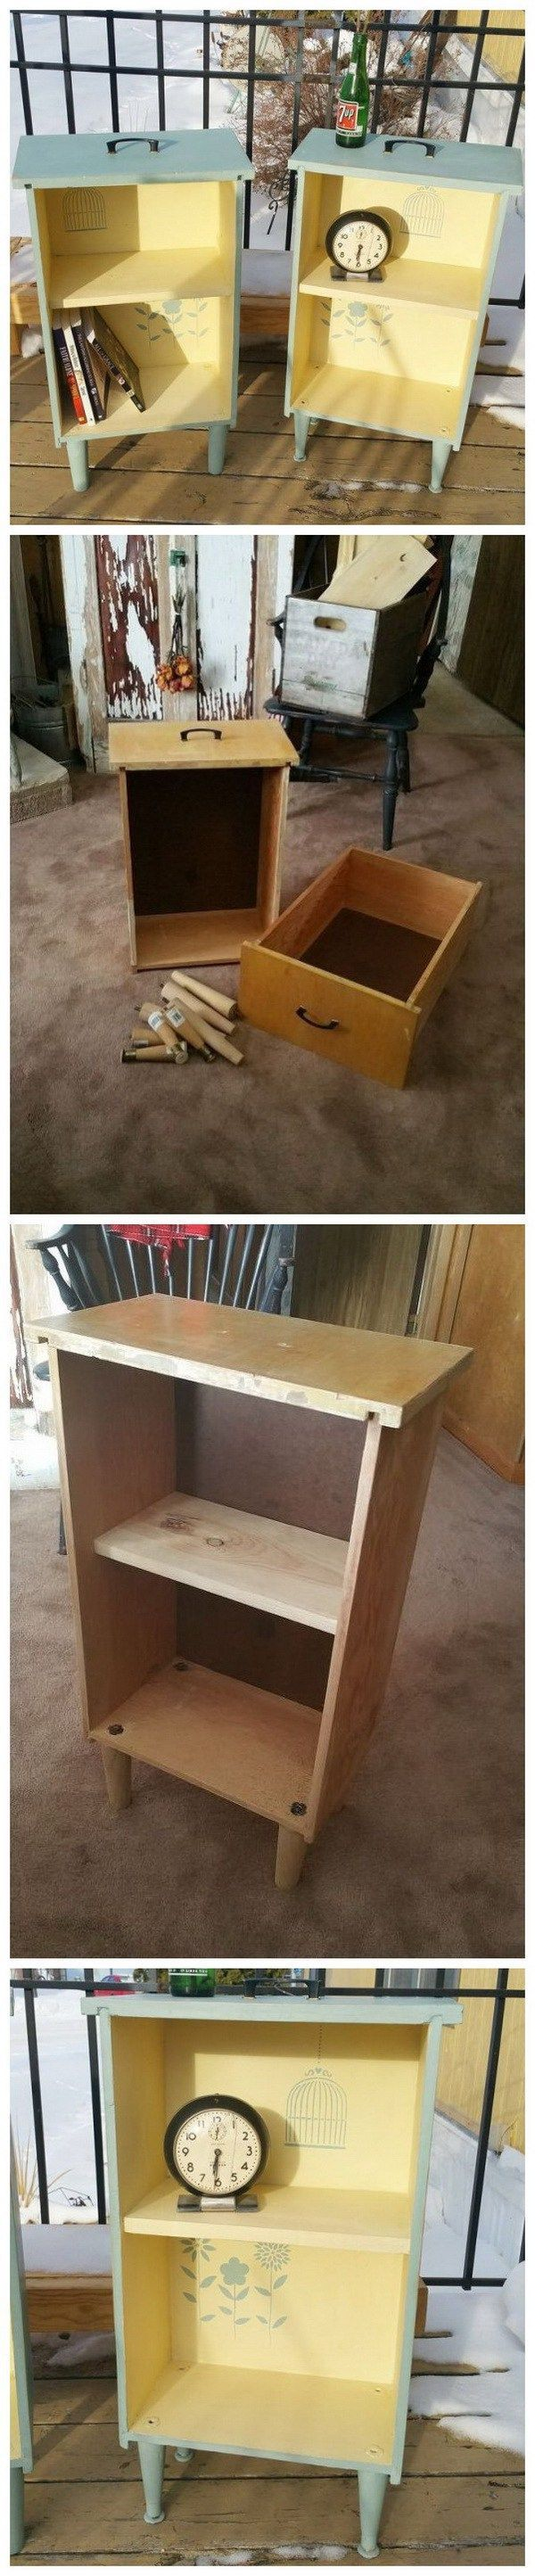 Reusing Old Furniture 20 diy ideas to reuse old furniture | reuse, diy ideas and repurposed